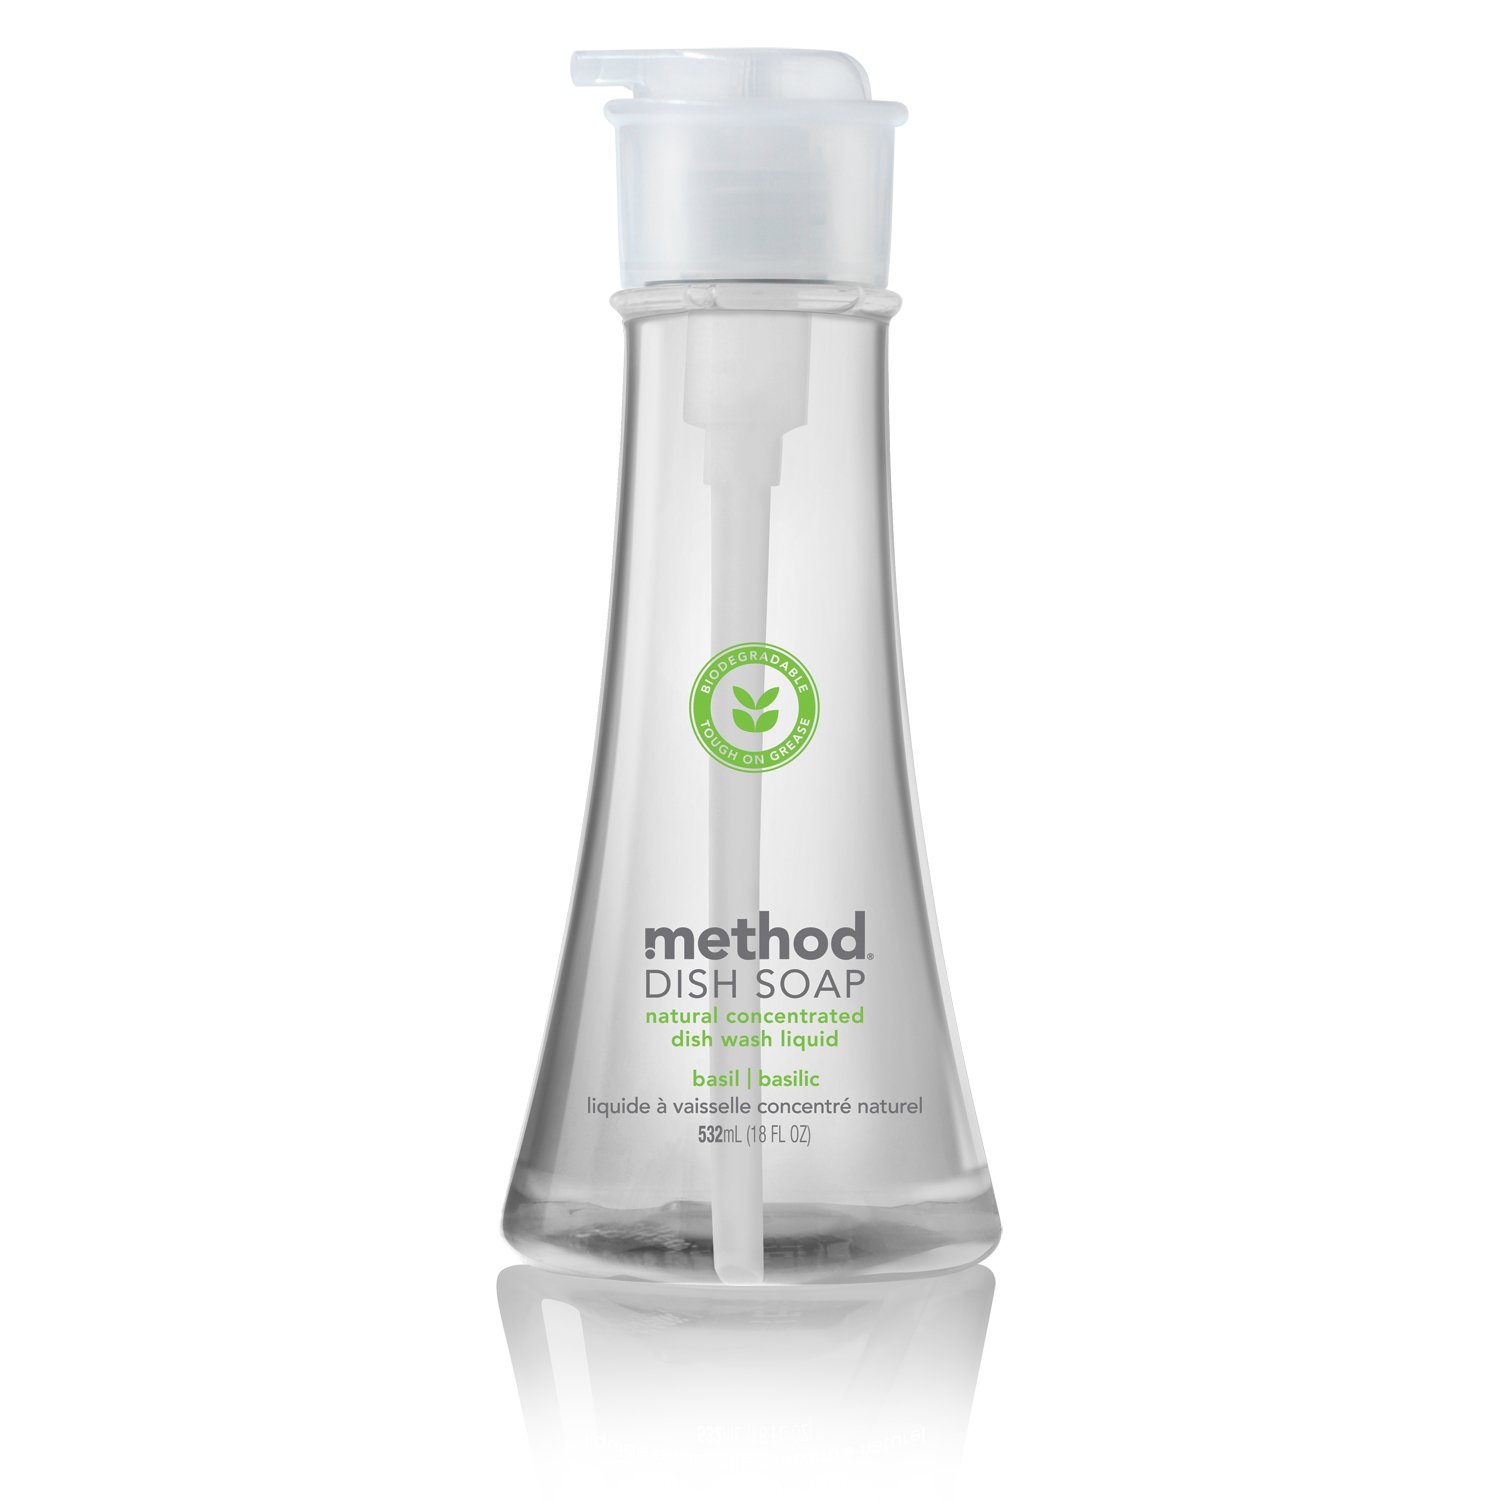 Method Natural Concentrated Pump Dish Soap, Basil, 18 Ounce (Pack of 2)